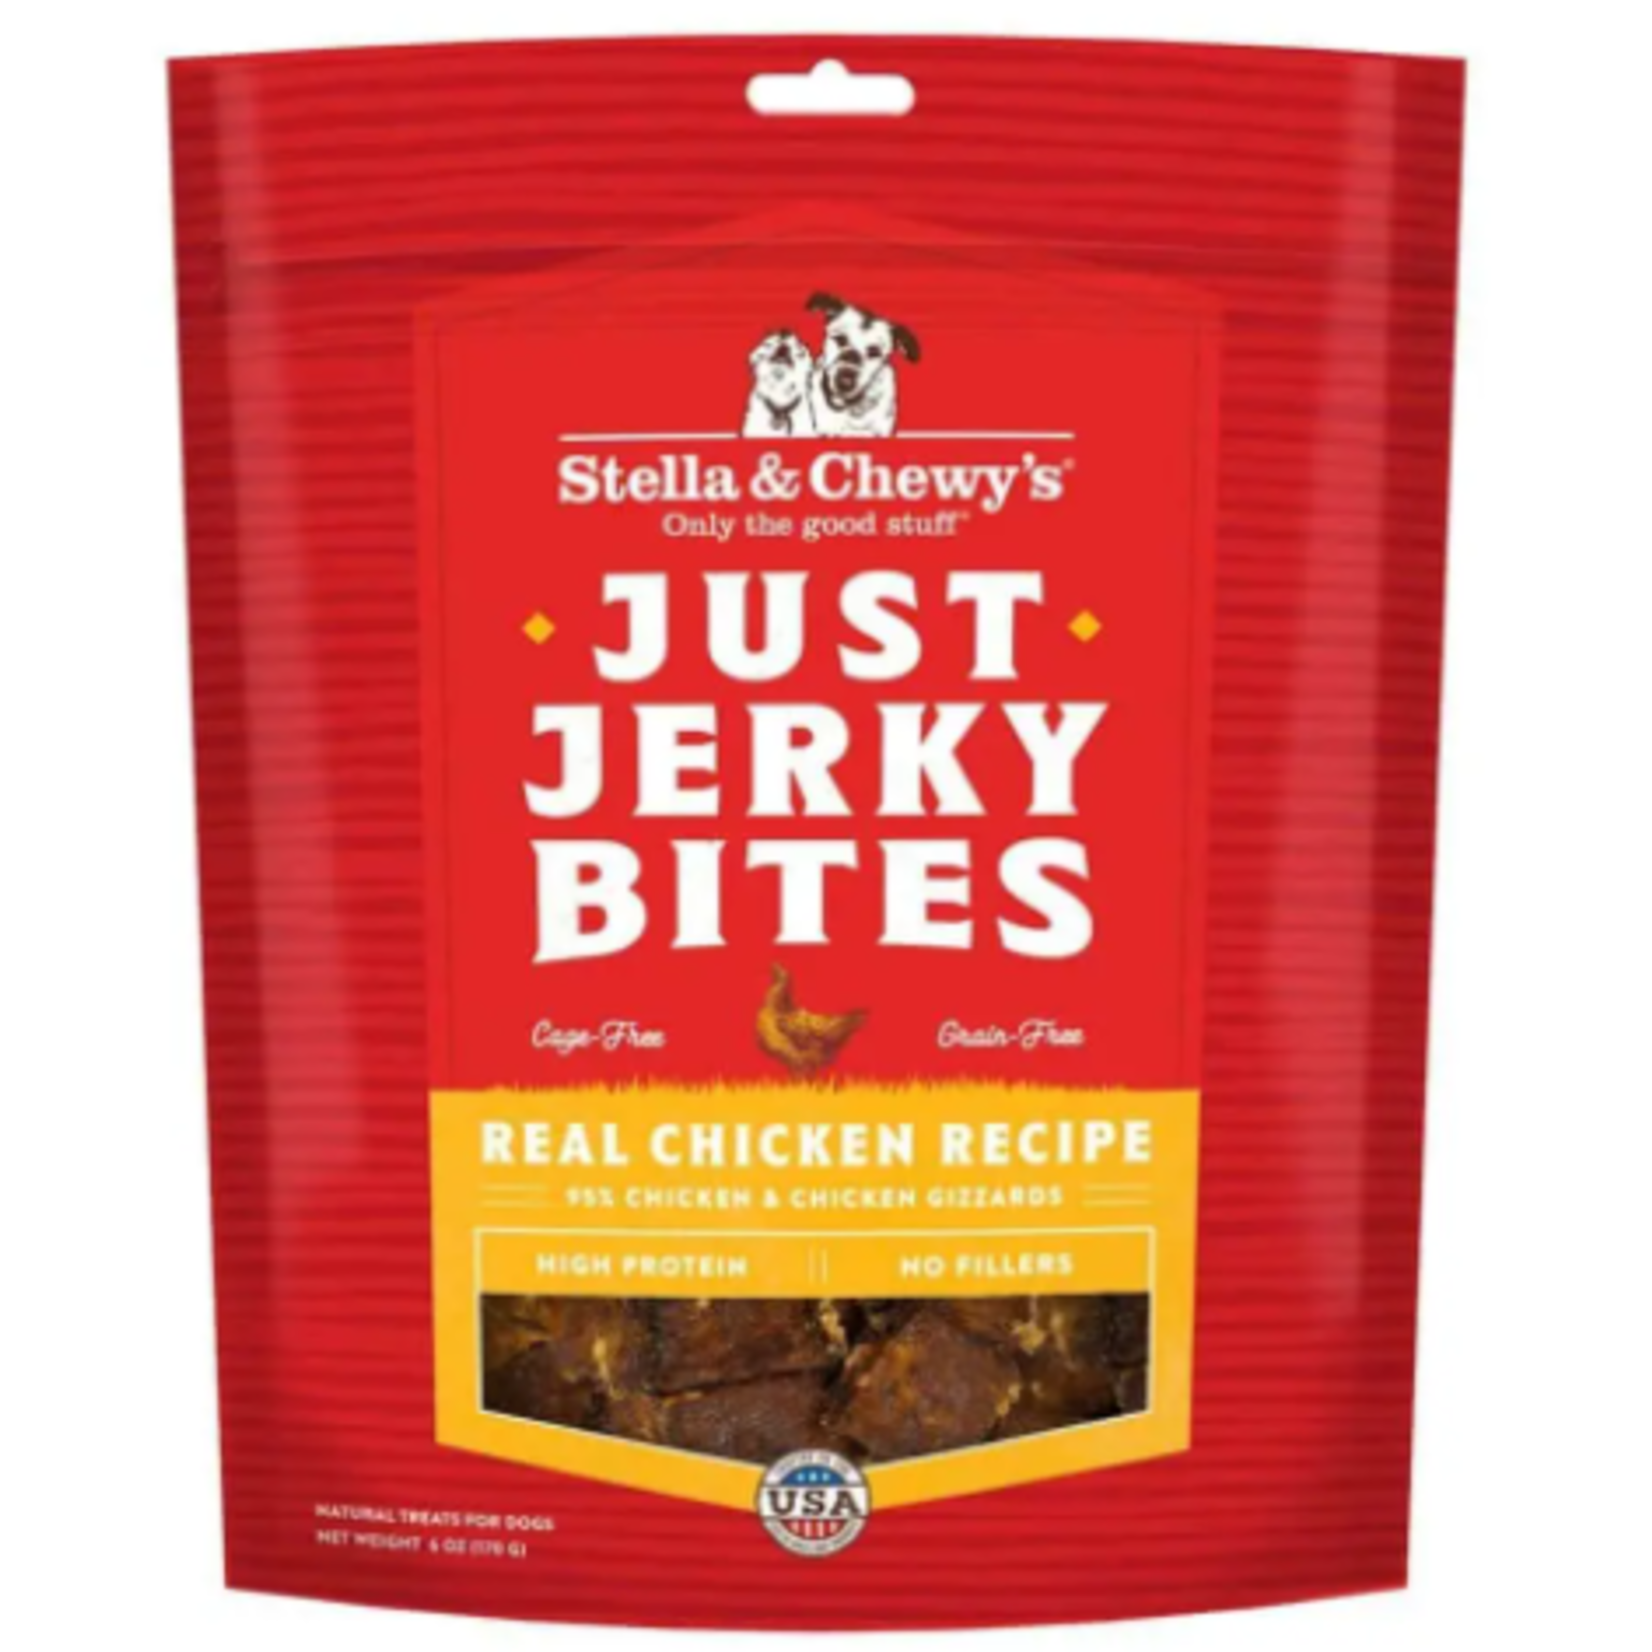 Stella & Chewy s Just Jerky Bites - Real Chicken Recipe - 6 oz